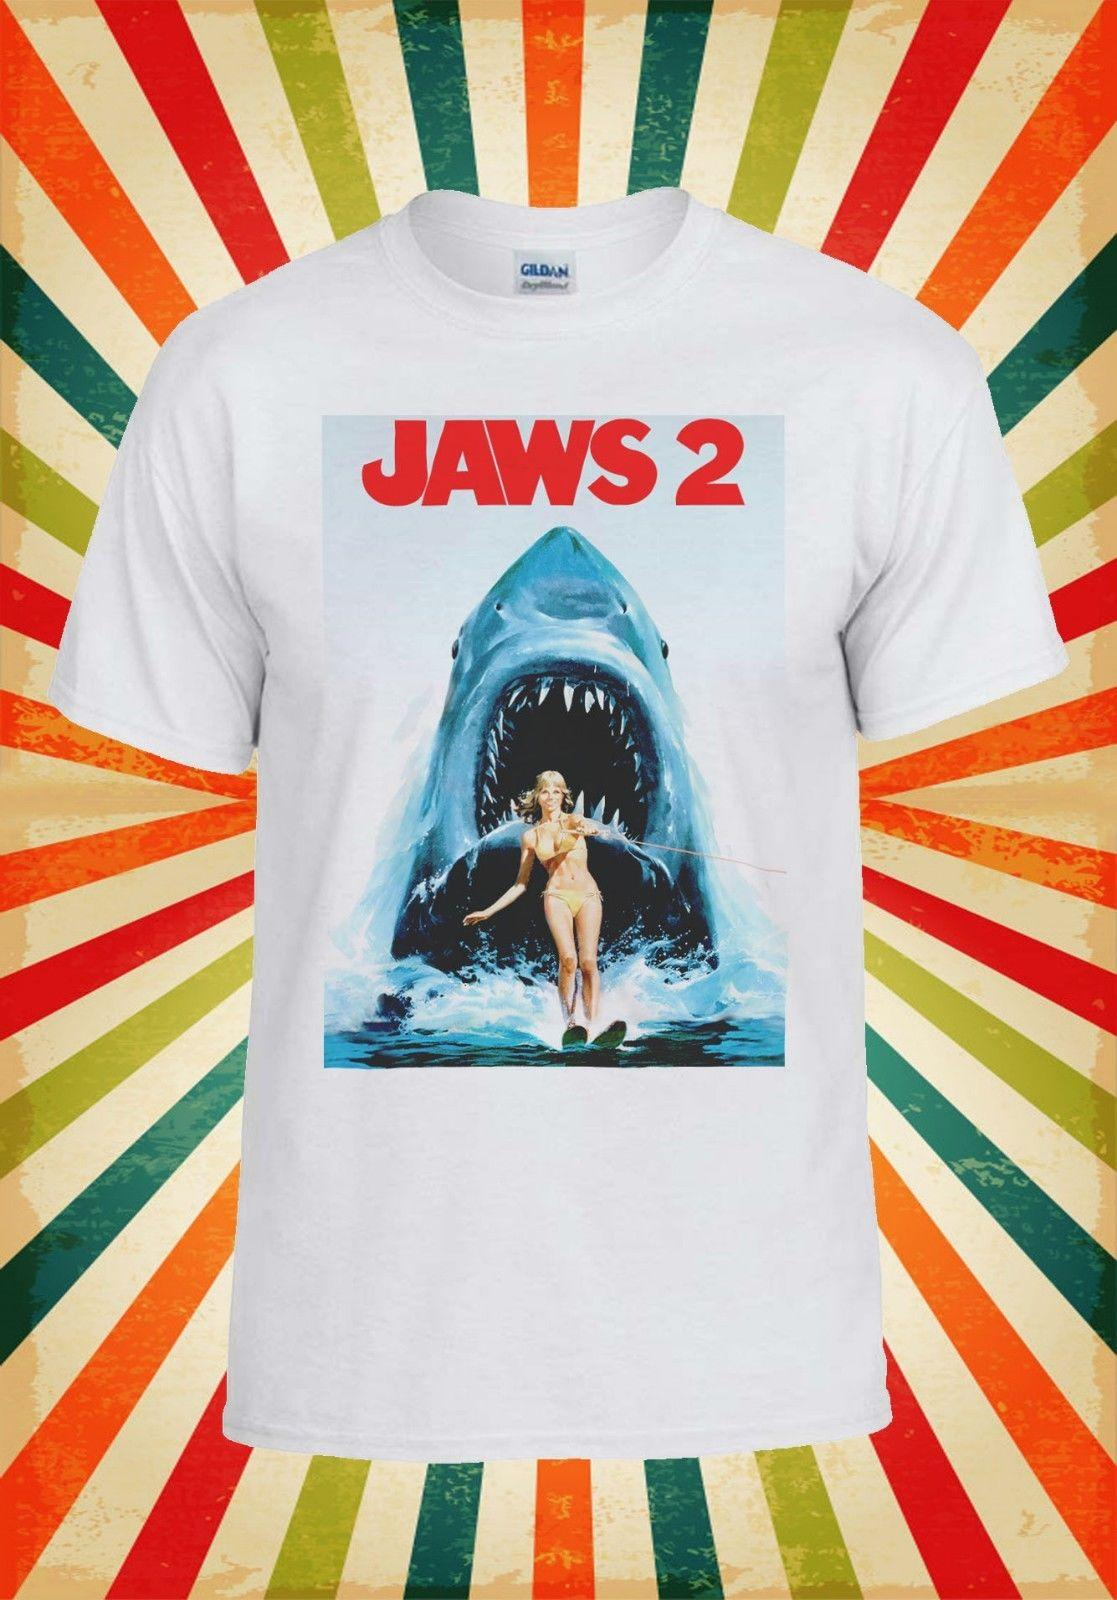 f5324388afbfc6 Jaws 2 Steven Spielberg Shark Attack Men Women Vest Tank Top Unisex T Shirt  2113 Create T Shirts Skull T Shirts From Crazytshirts30